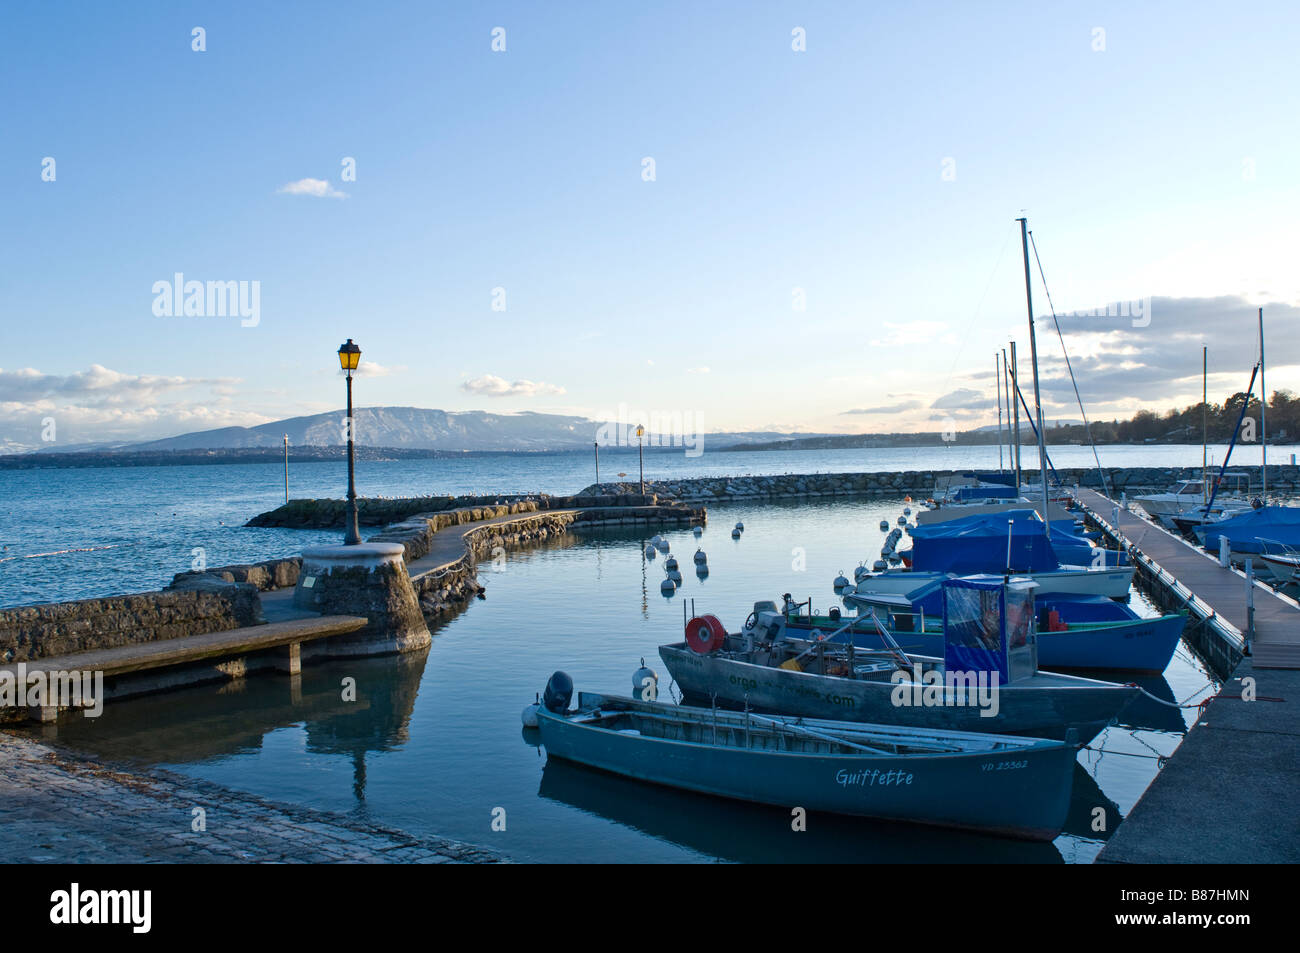 The port of Coppet on  the lake leman ( Geneva Lake ) in Coppet, Switzerland - Stock Image